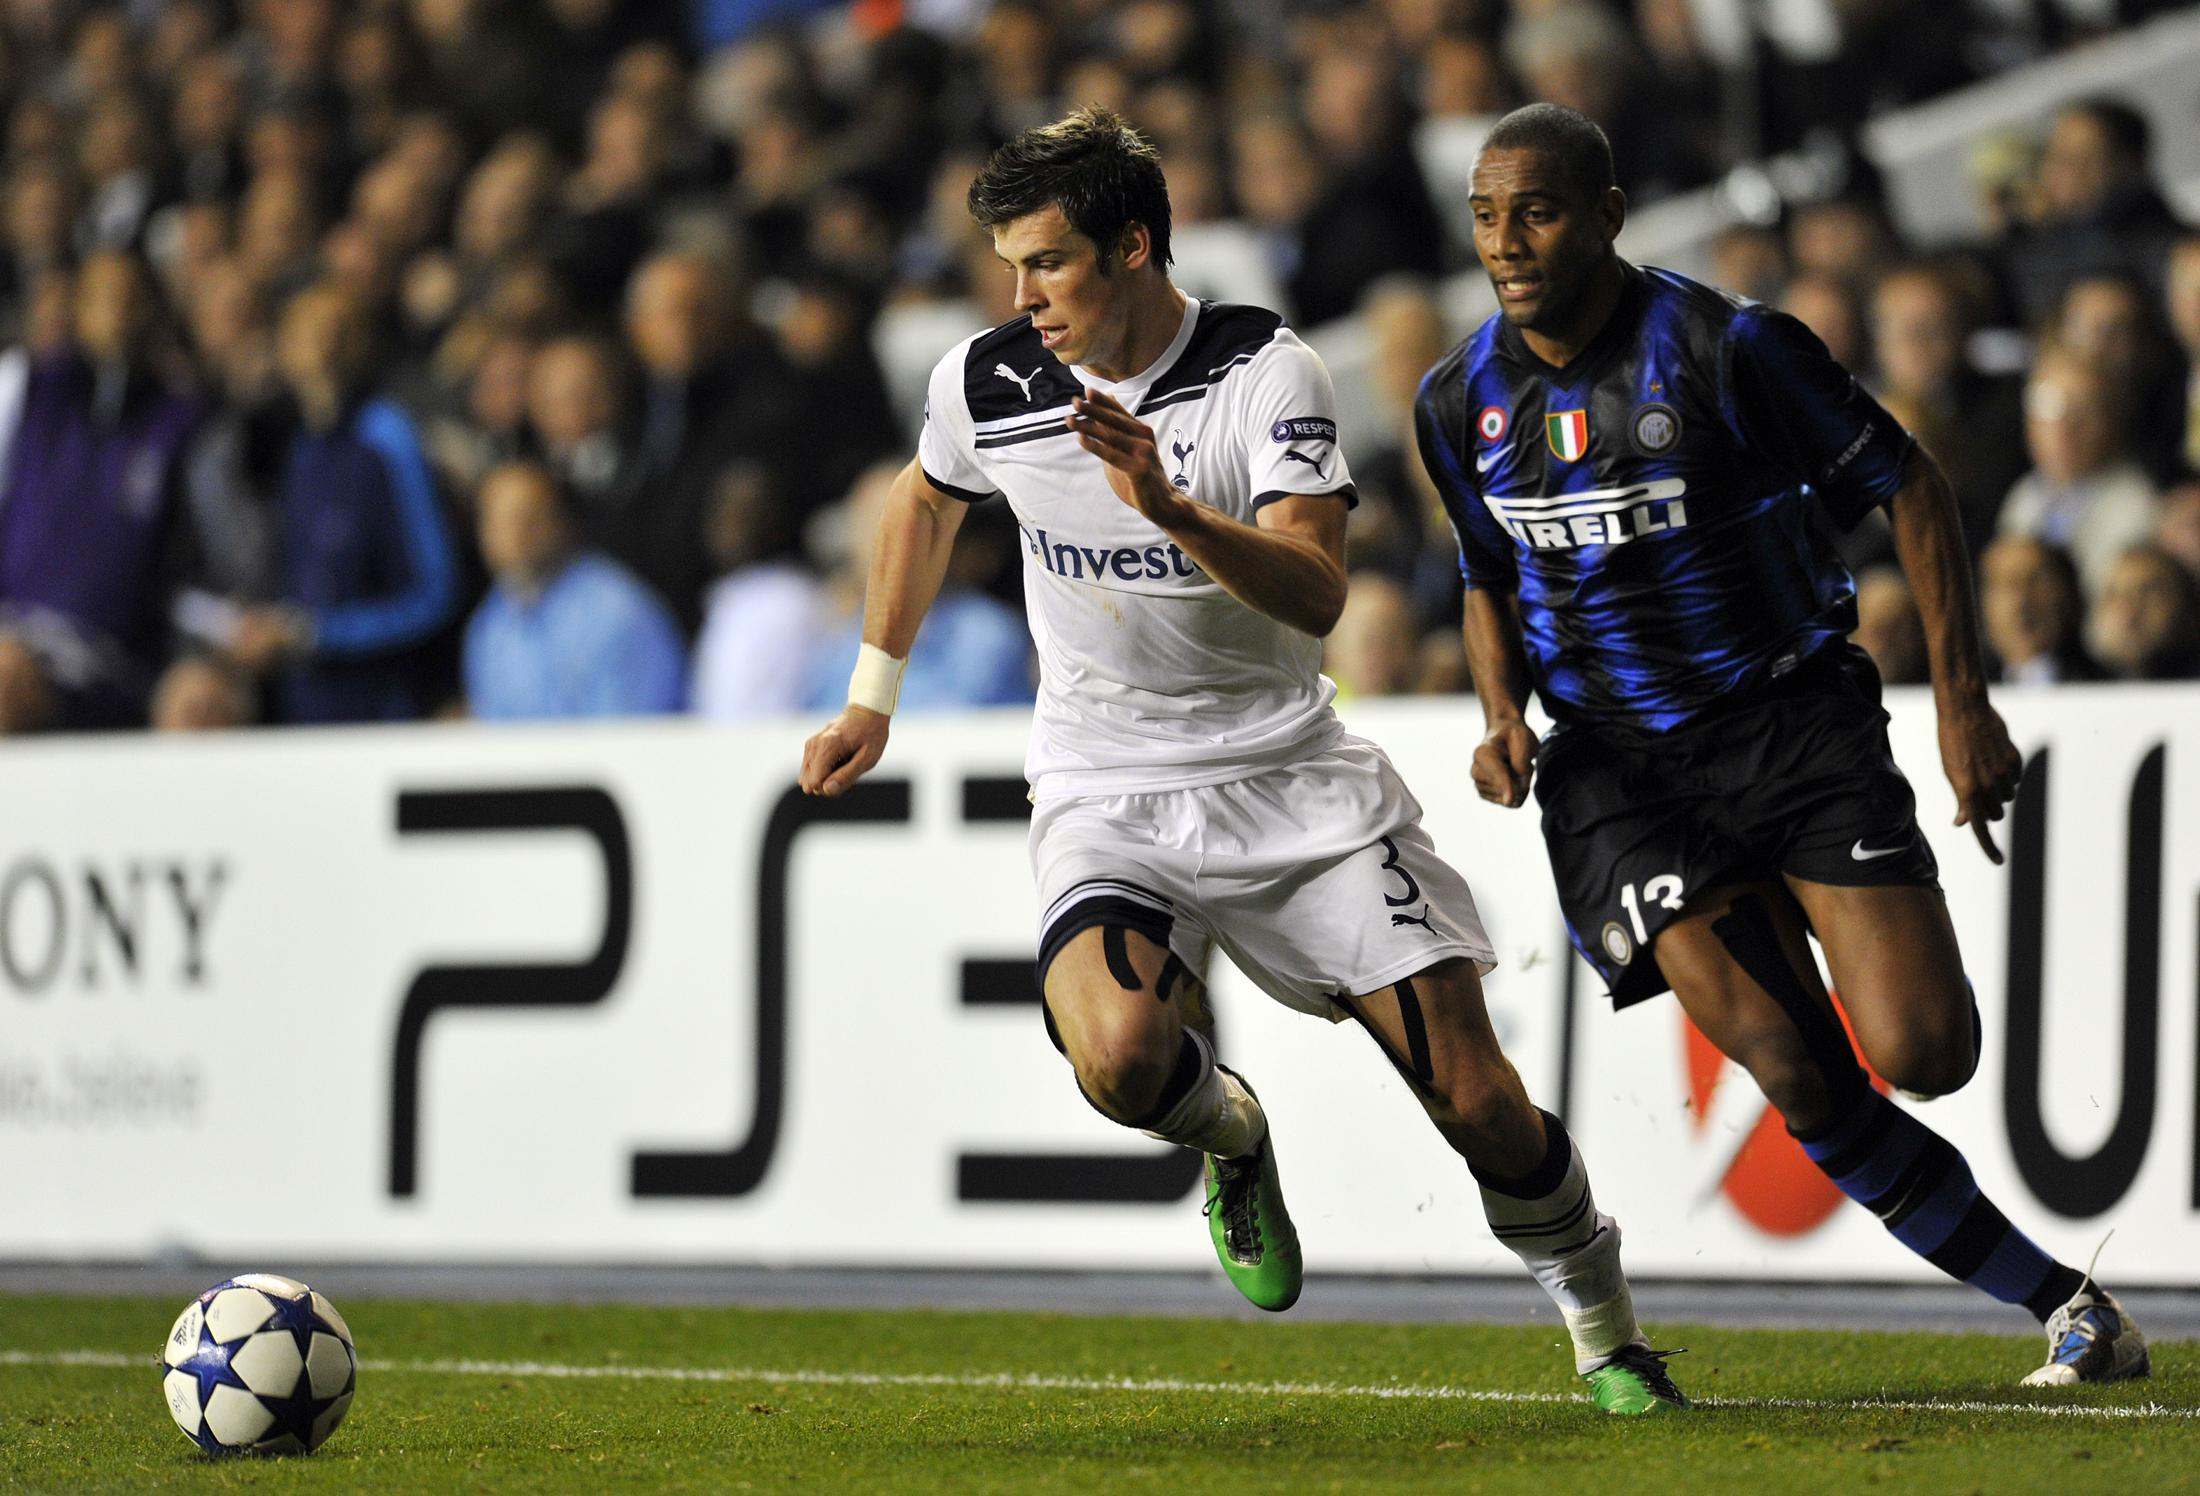 Unfortunately, Maicon is usually remembered for being destroyed by Gareth Bale in 2011